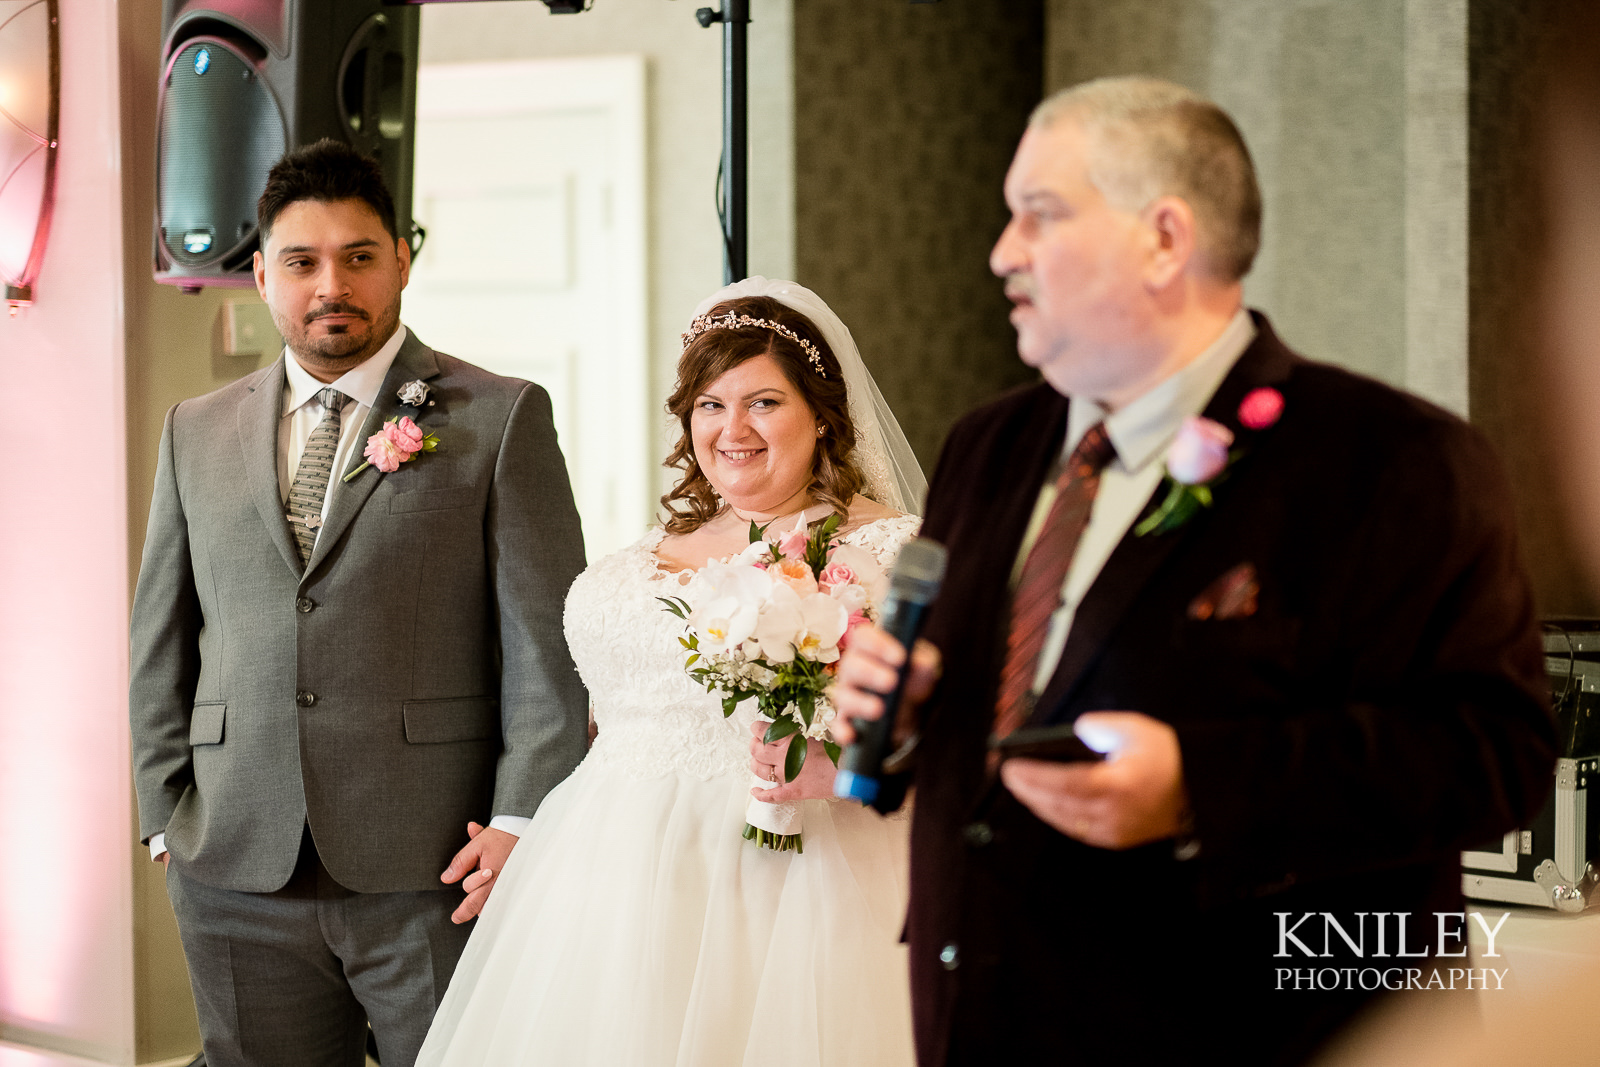 081 - Woodcliff Hotel - Rochester NY wedding photo - Kniley Photography.jpg